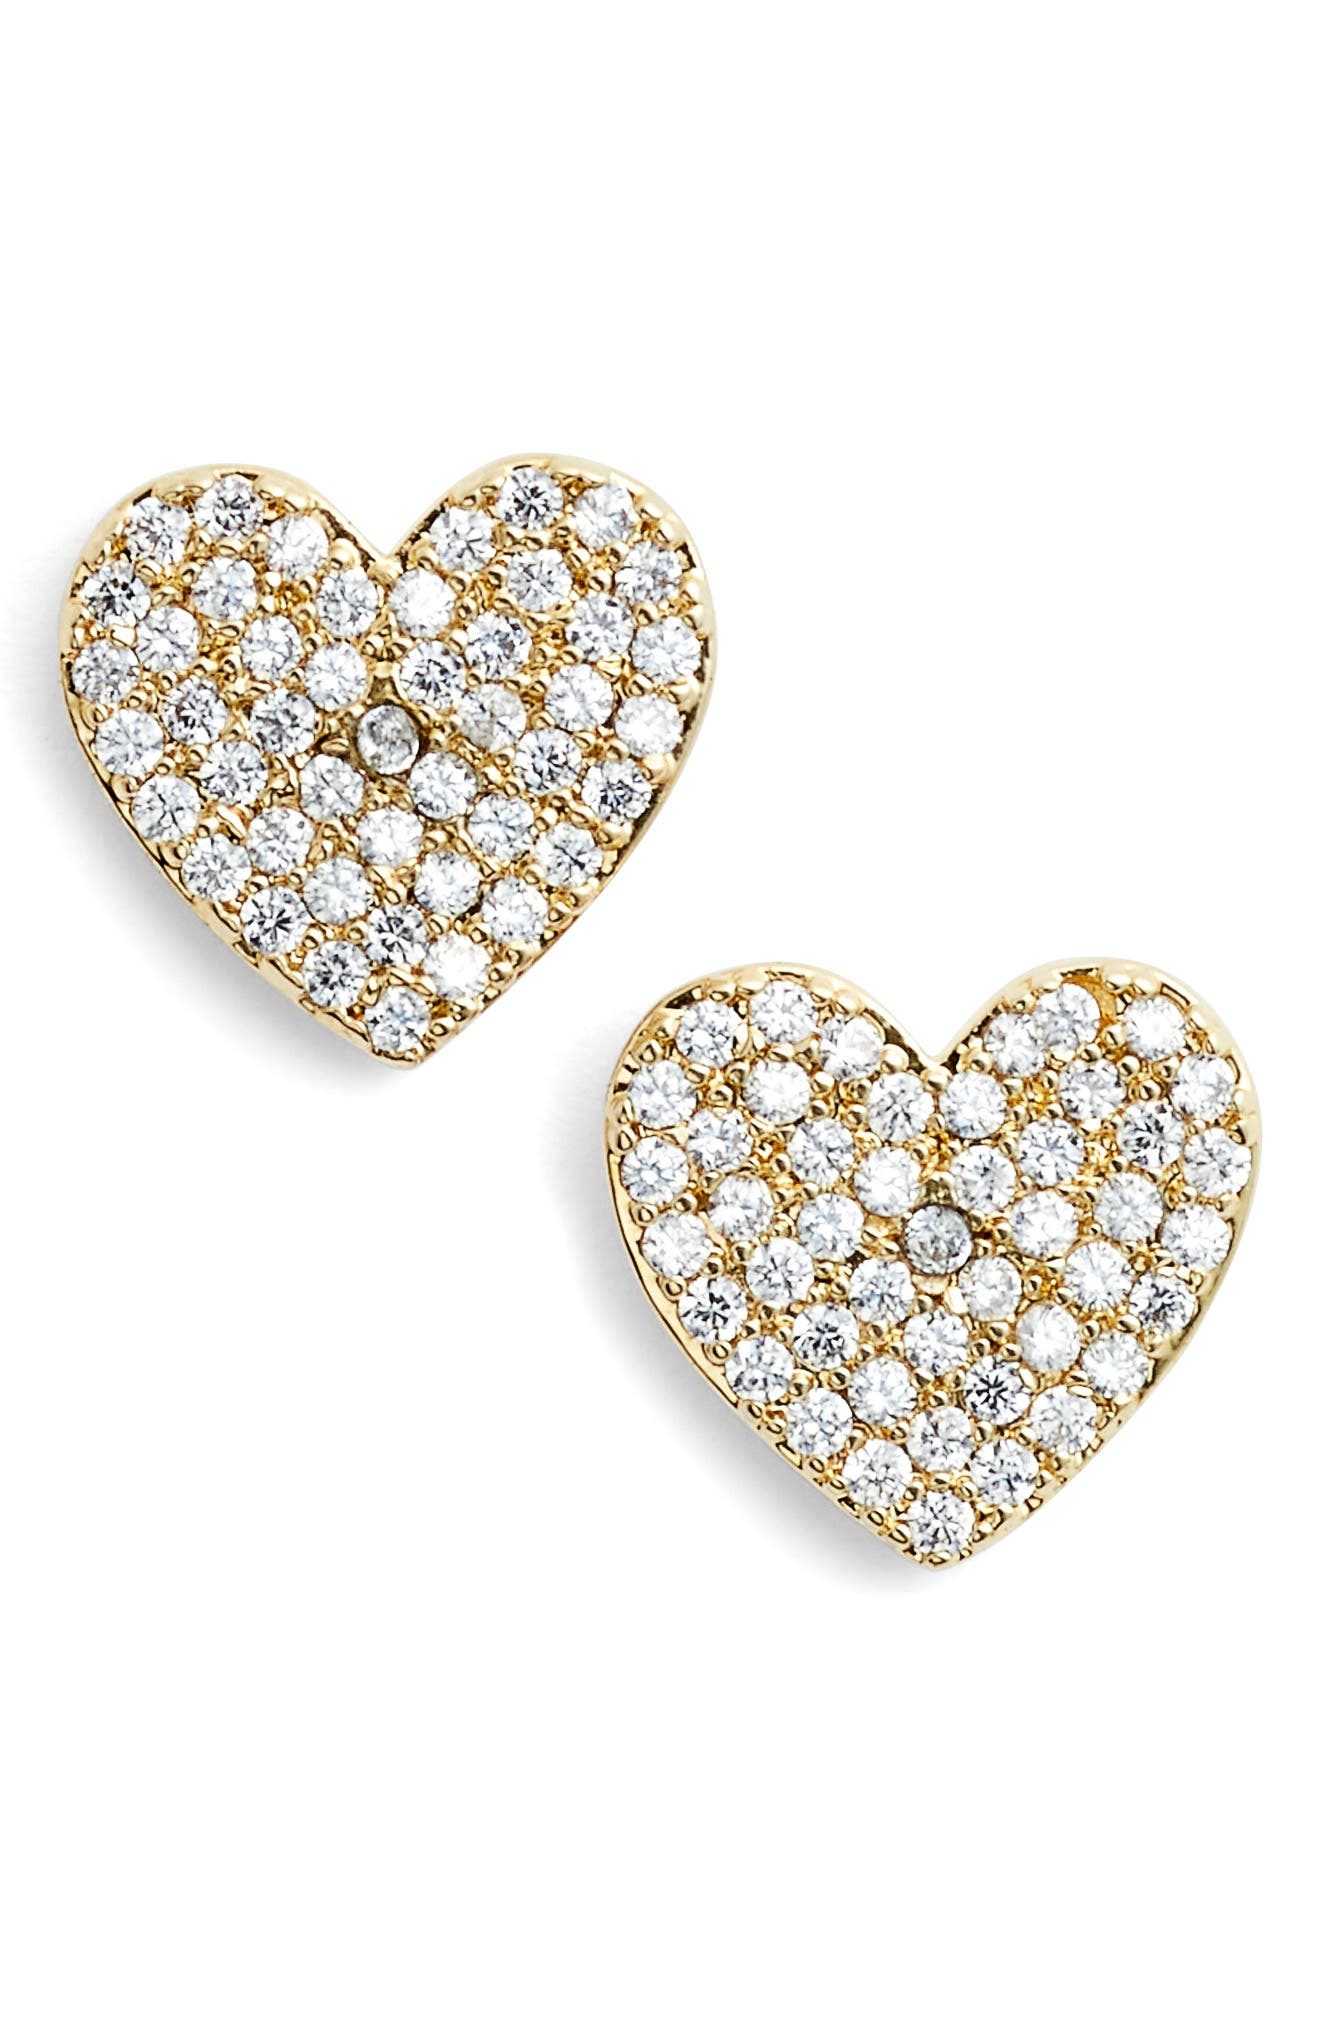 Main Image - kate spade new york yours truly pave heart stud earrings